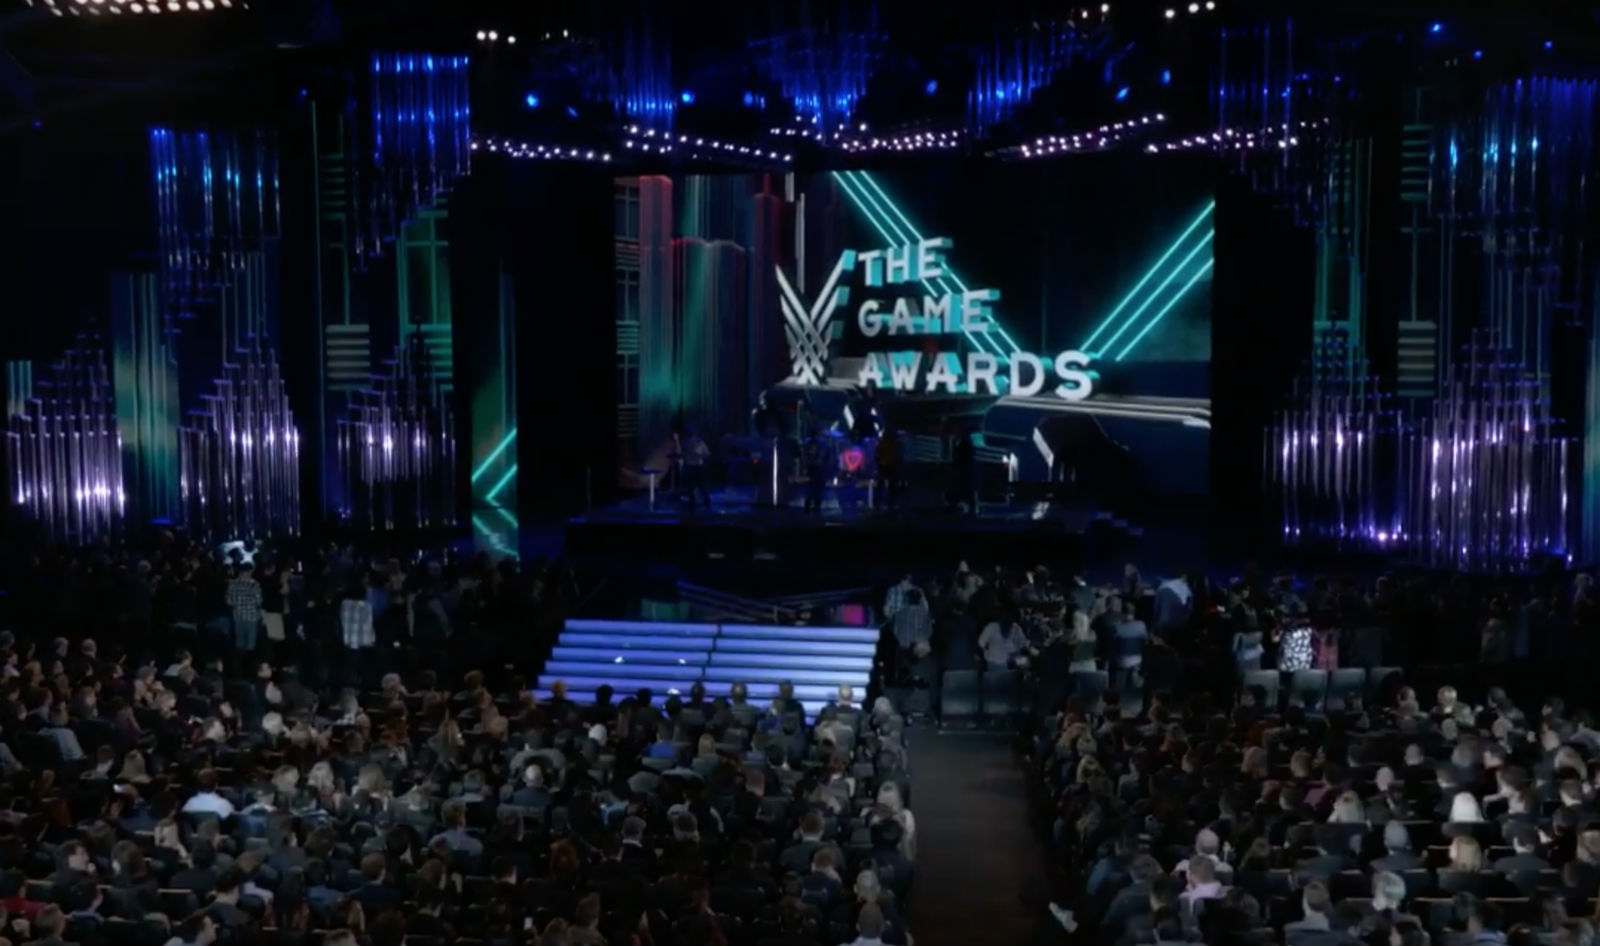 'The Game Awards' round-up: catch all the best bits | DeviceDaily.com